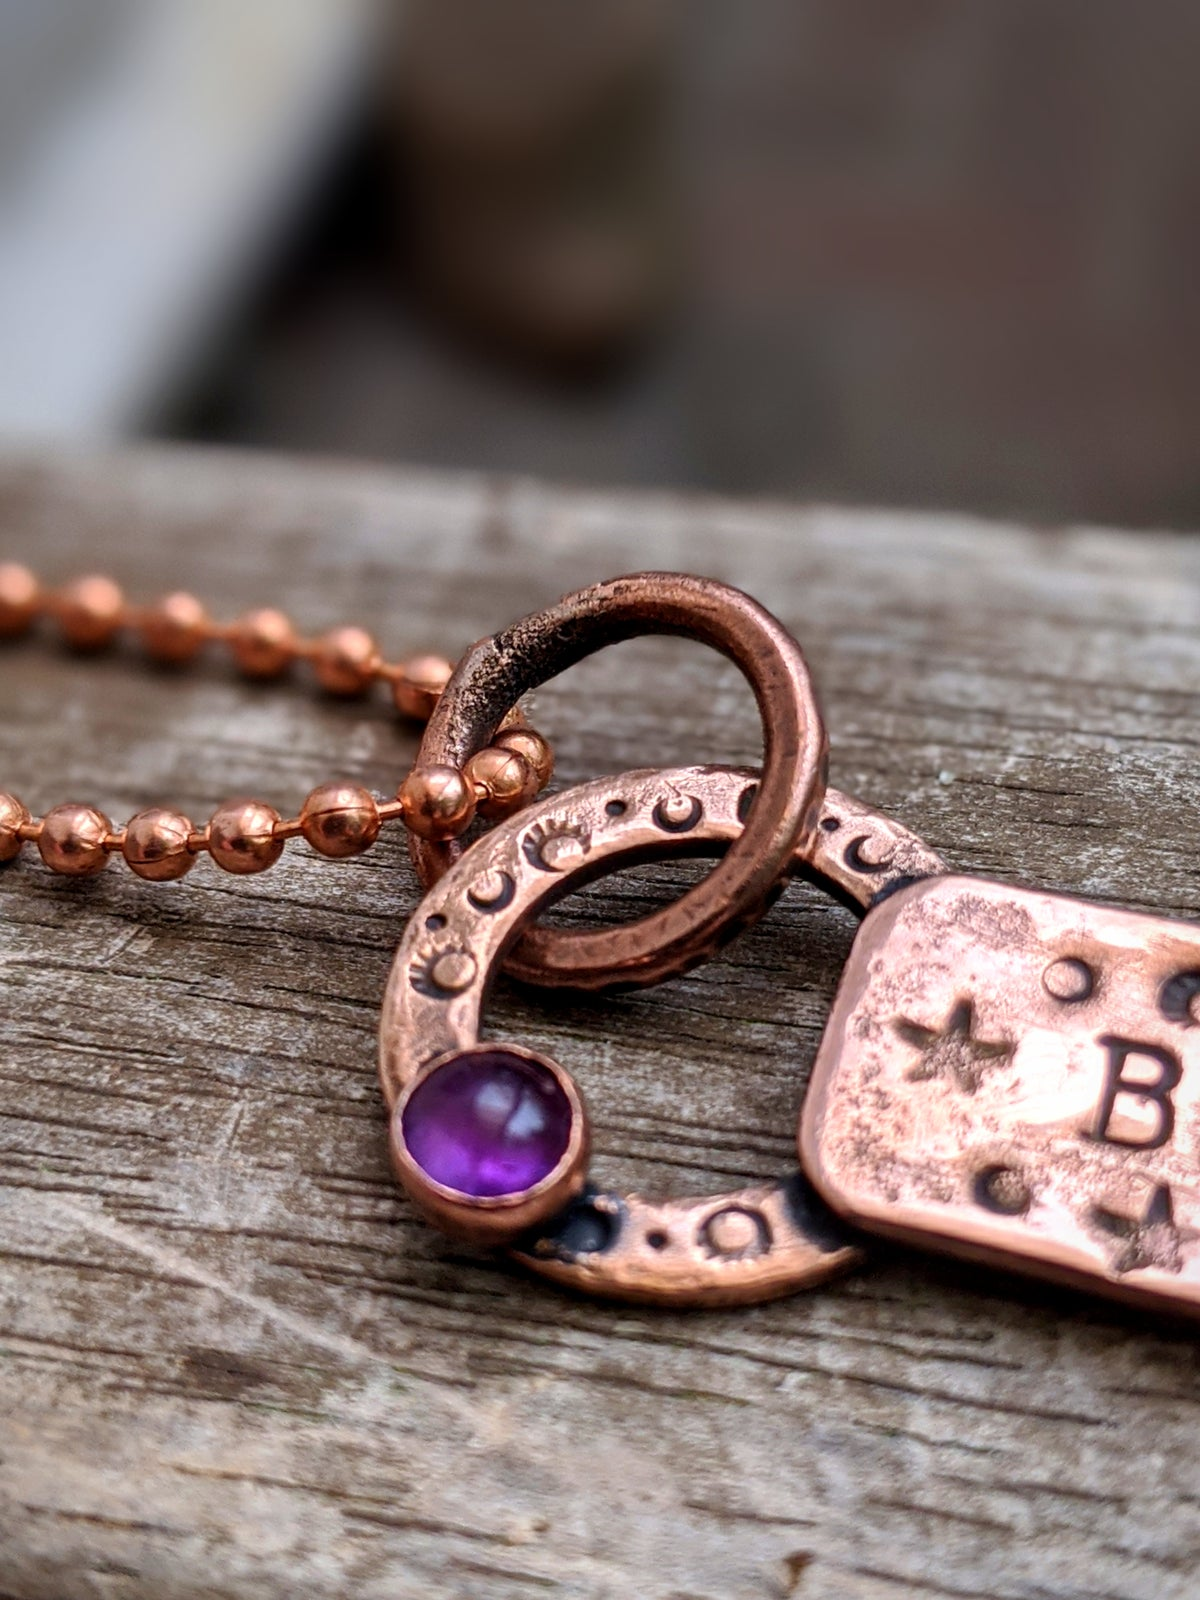 Be Still upcycled rustic copper & amethyst mantra pendant